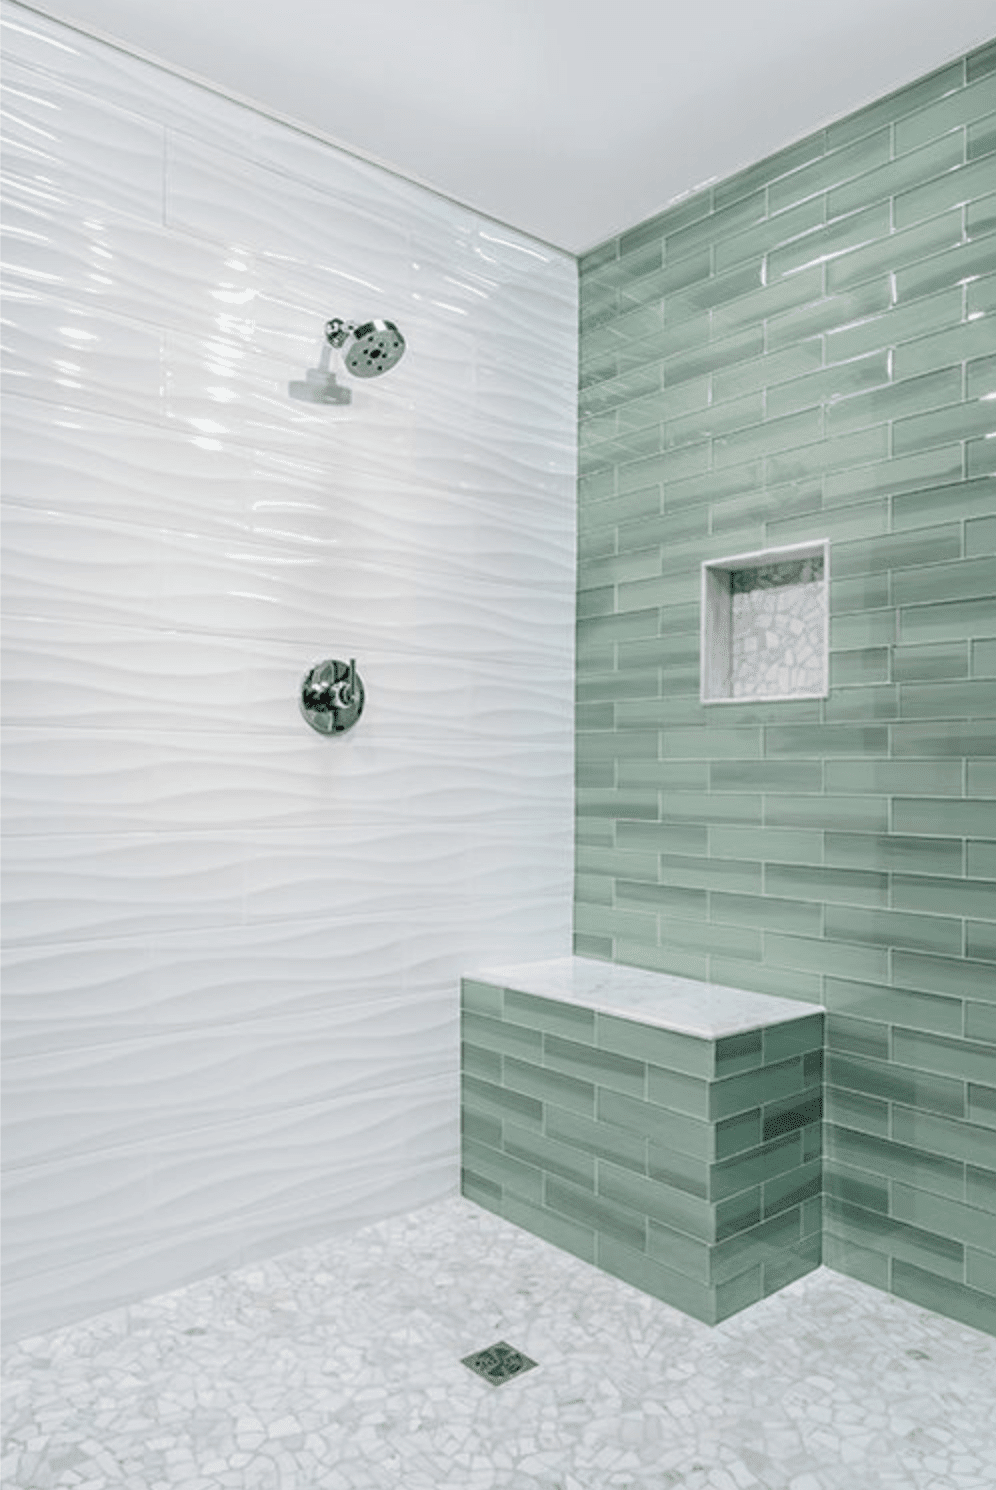 BLANCO WAVES CERAMIC WALL TILE - 8 X 24 IN - Luxury Bathroom Products